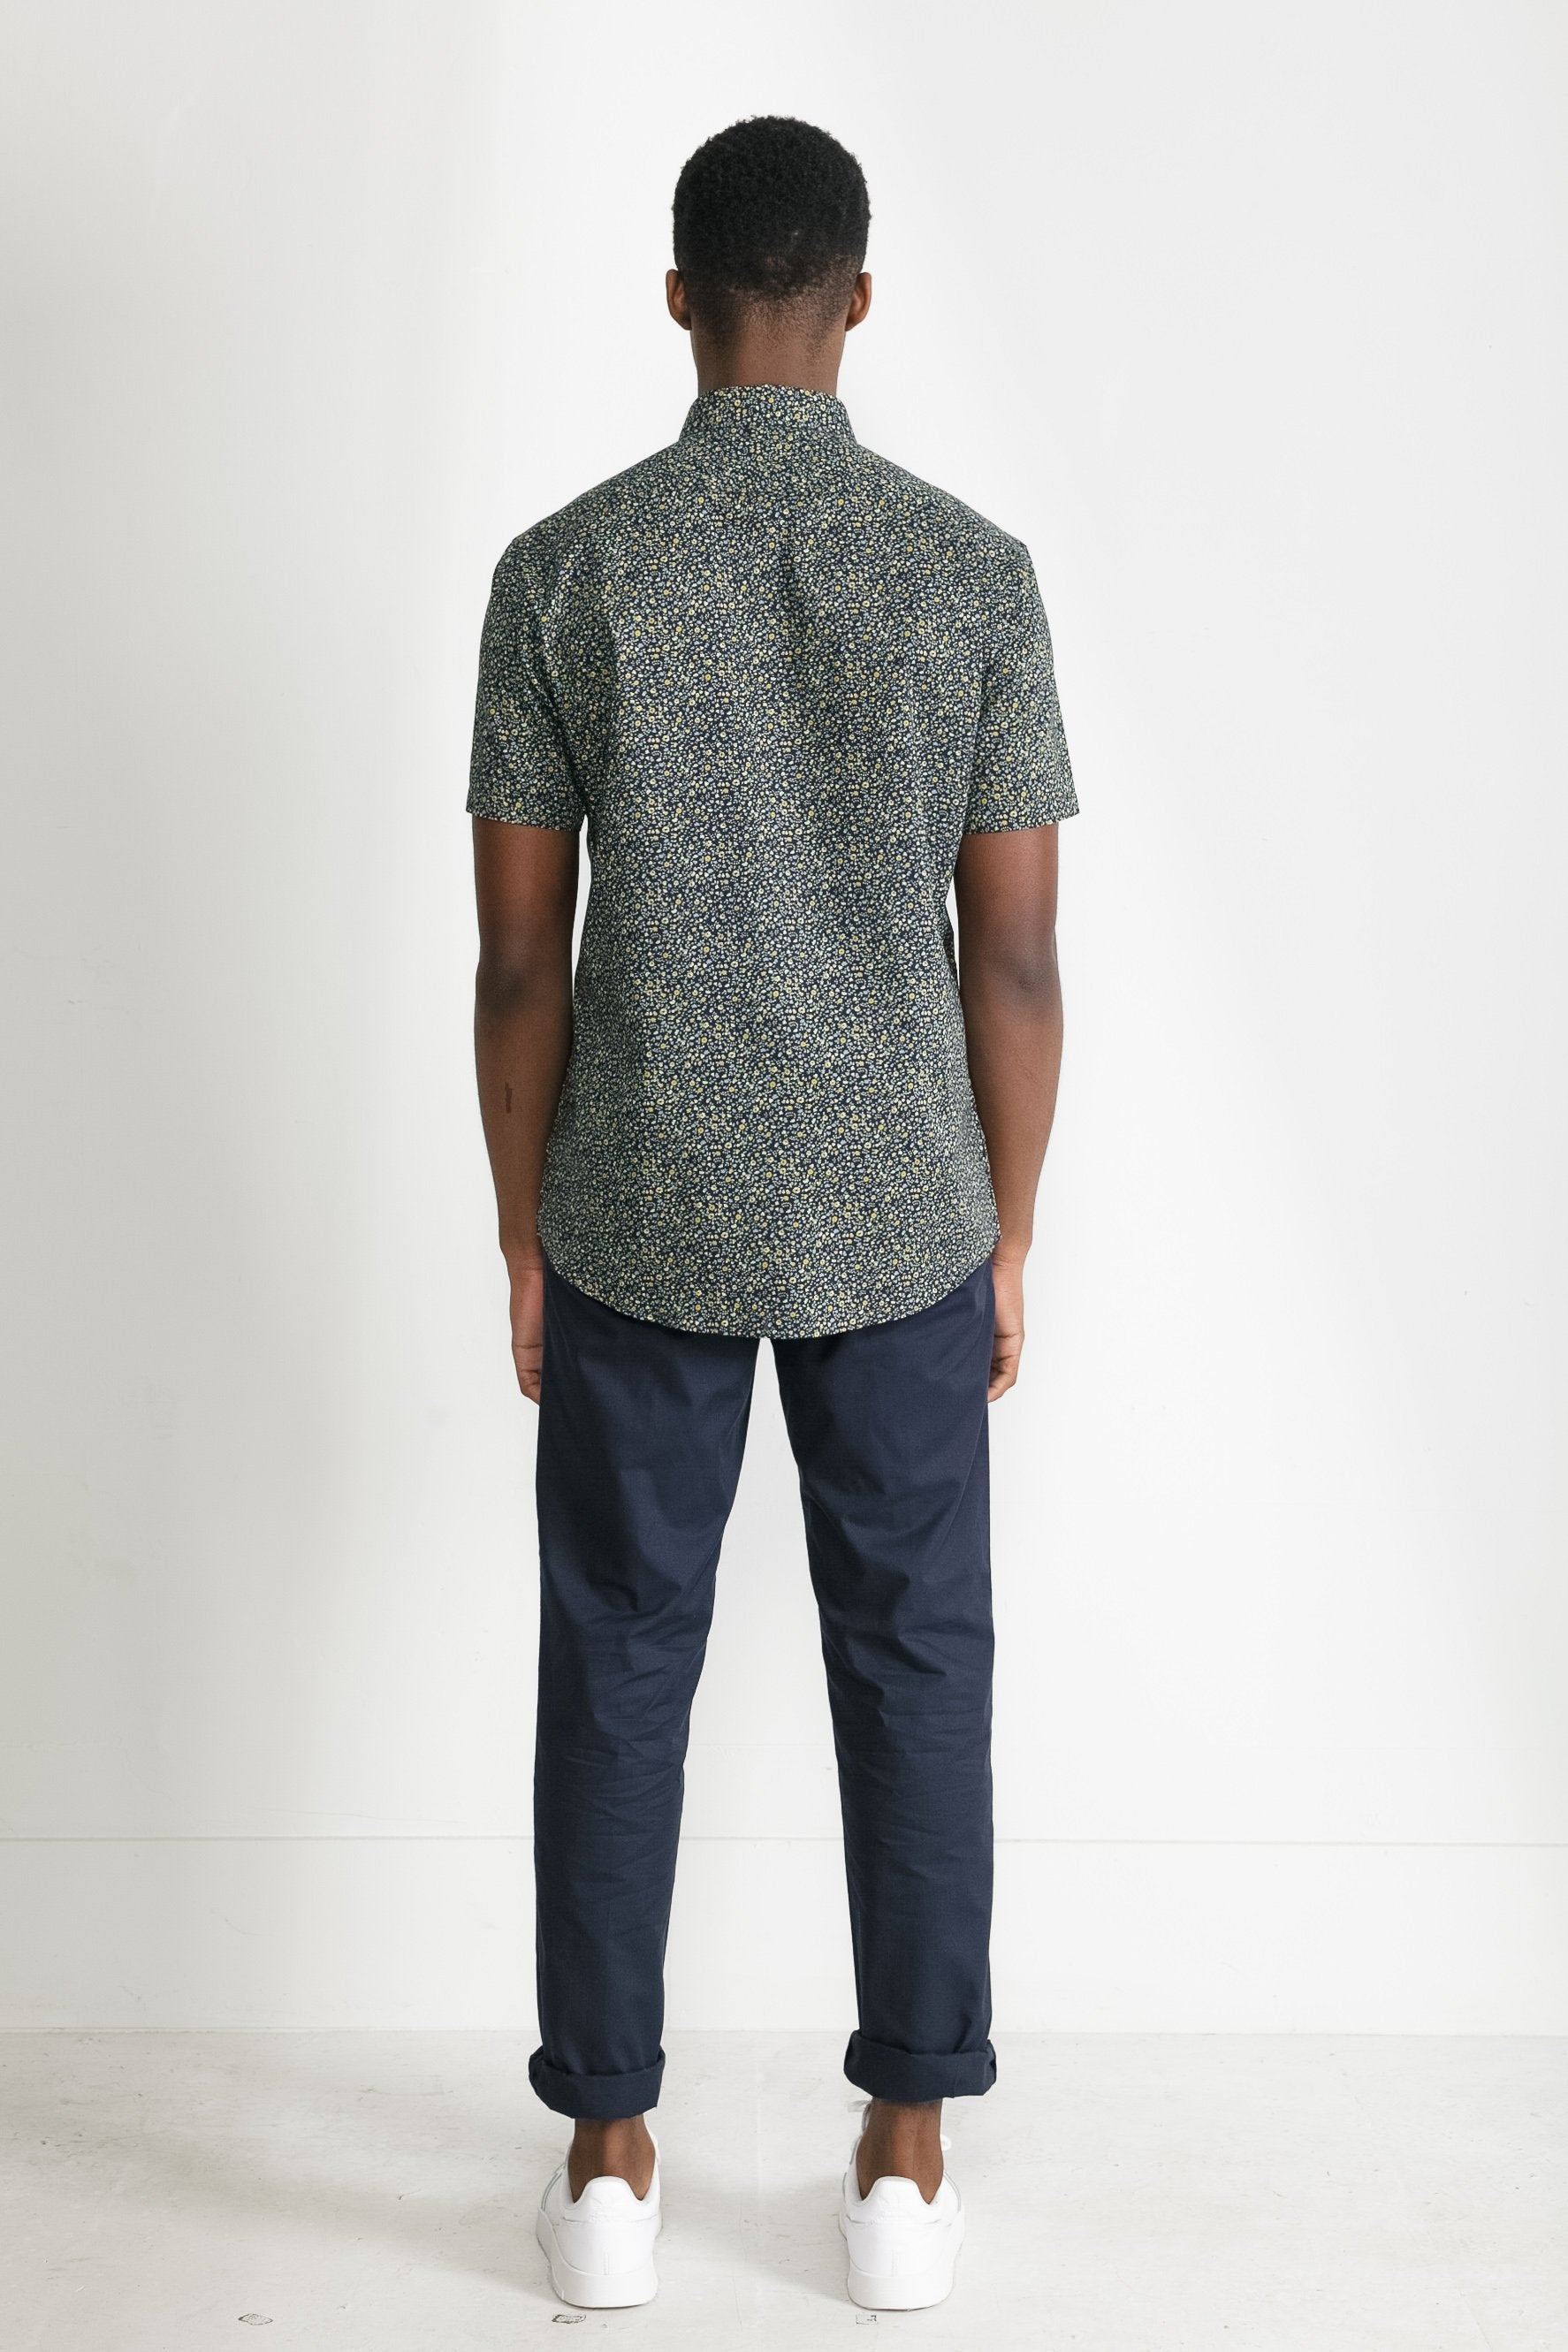 Japanese Floral Print in Navy and Mustard 003